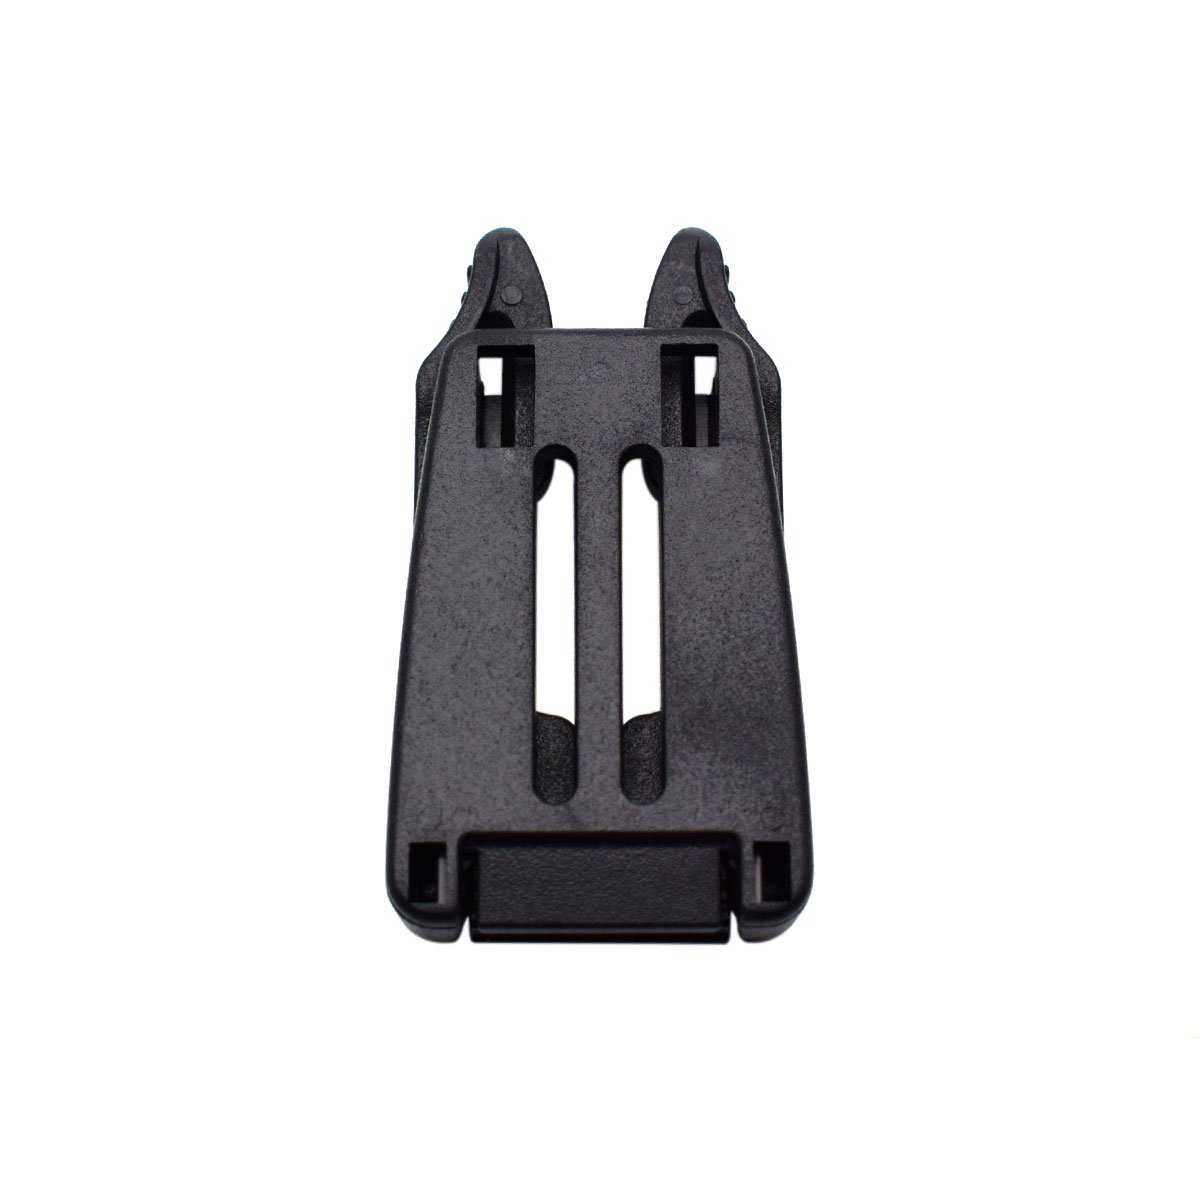 Annex Clips Adjustable Foldable Molle Accessories Buckles,Removable Tactical Strap Clips Connect Molle Bag Backpack 5 pcs A002